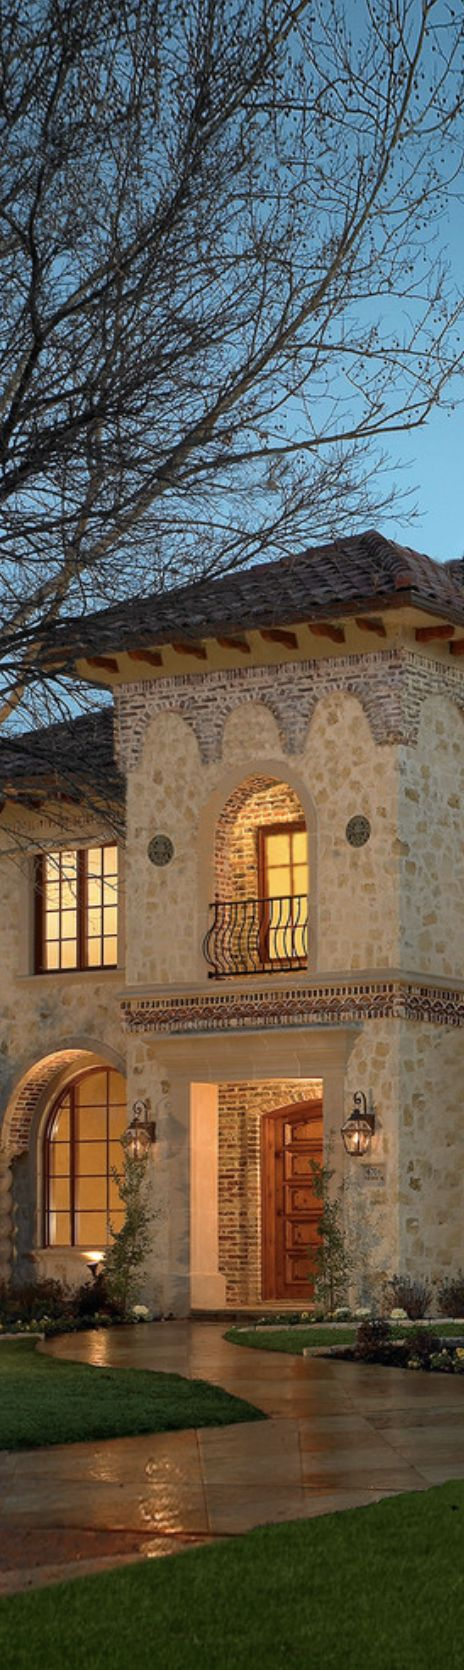 Tuscan stone and brick design details